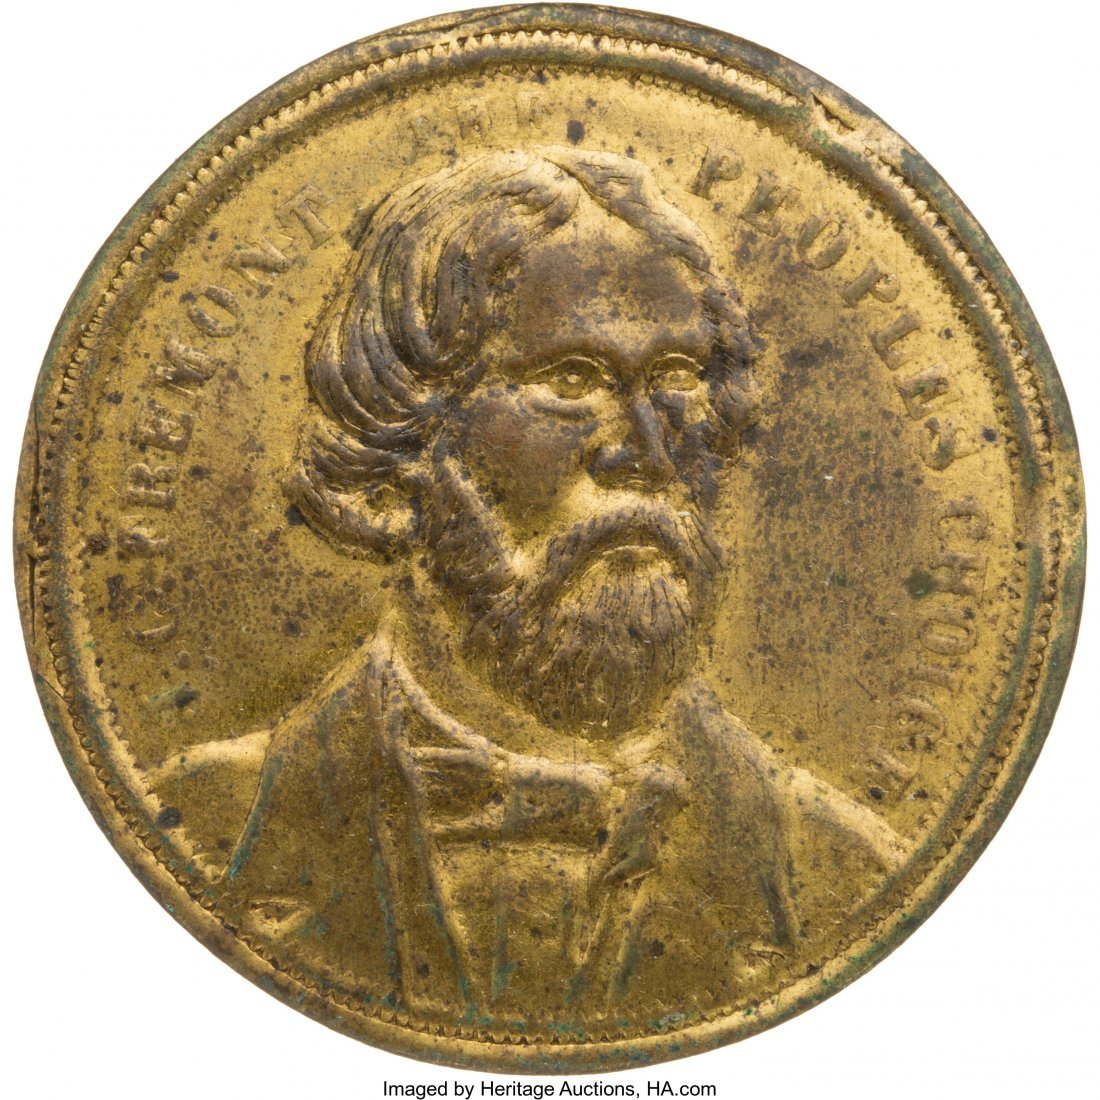 43128: John C. Frémont: Unlisted Brass Shell Piece. Si